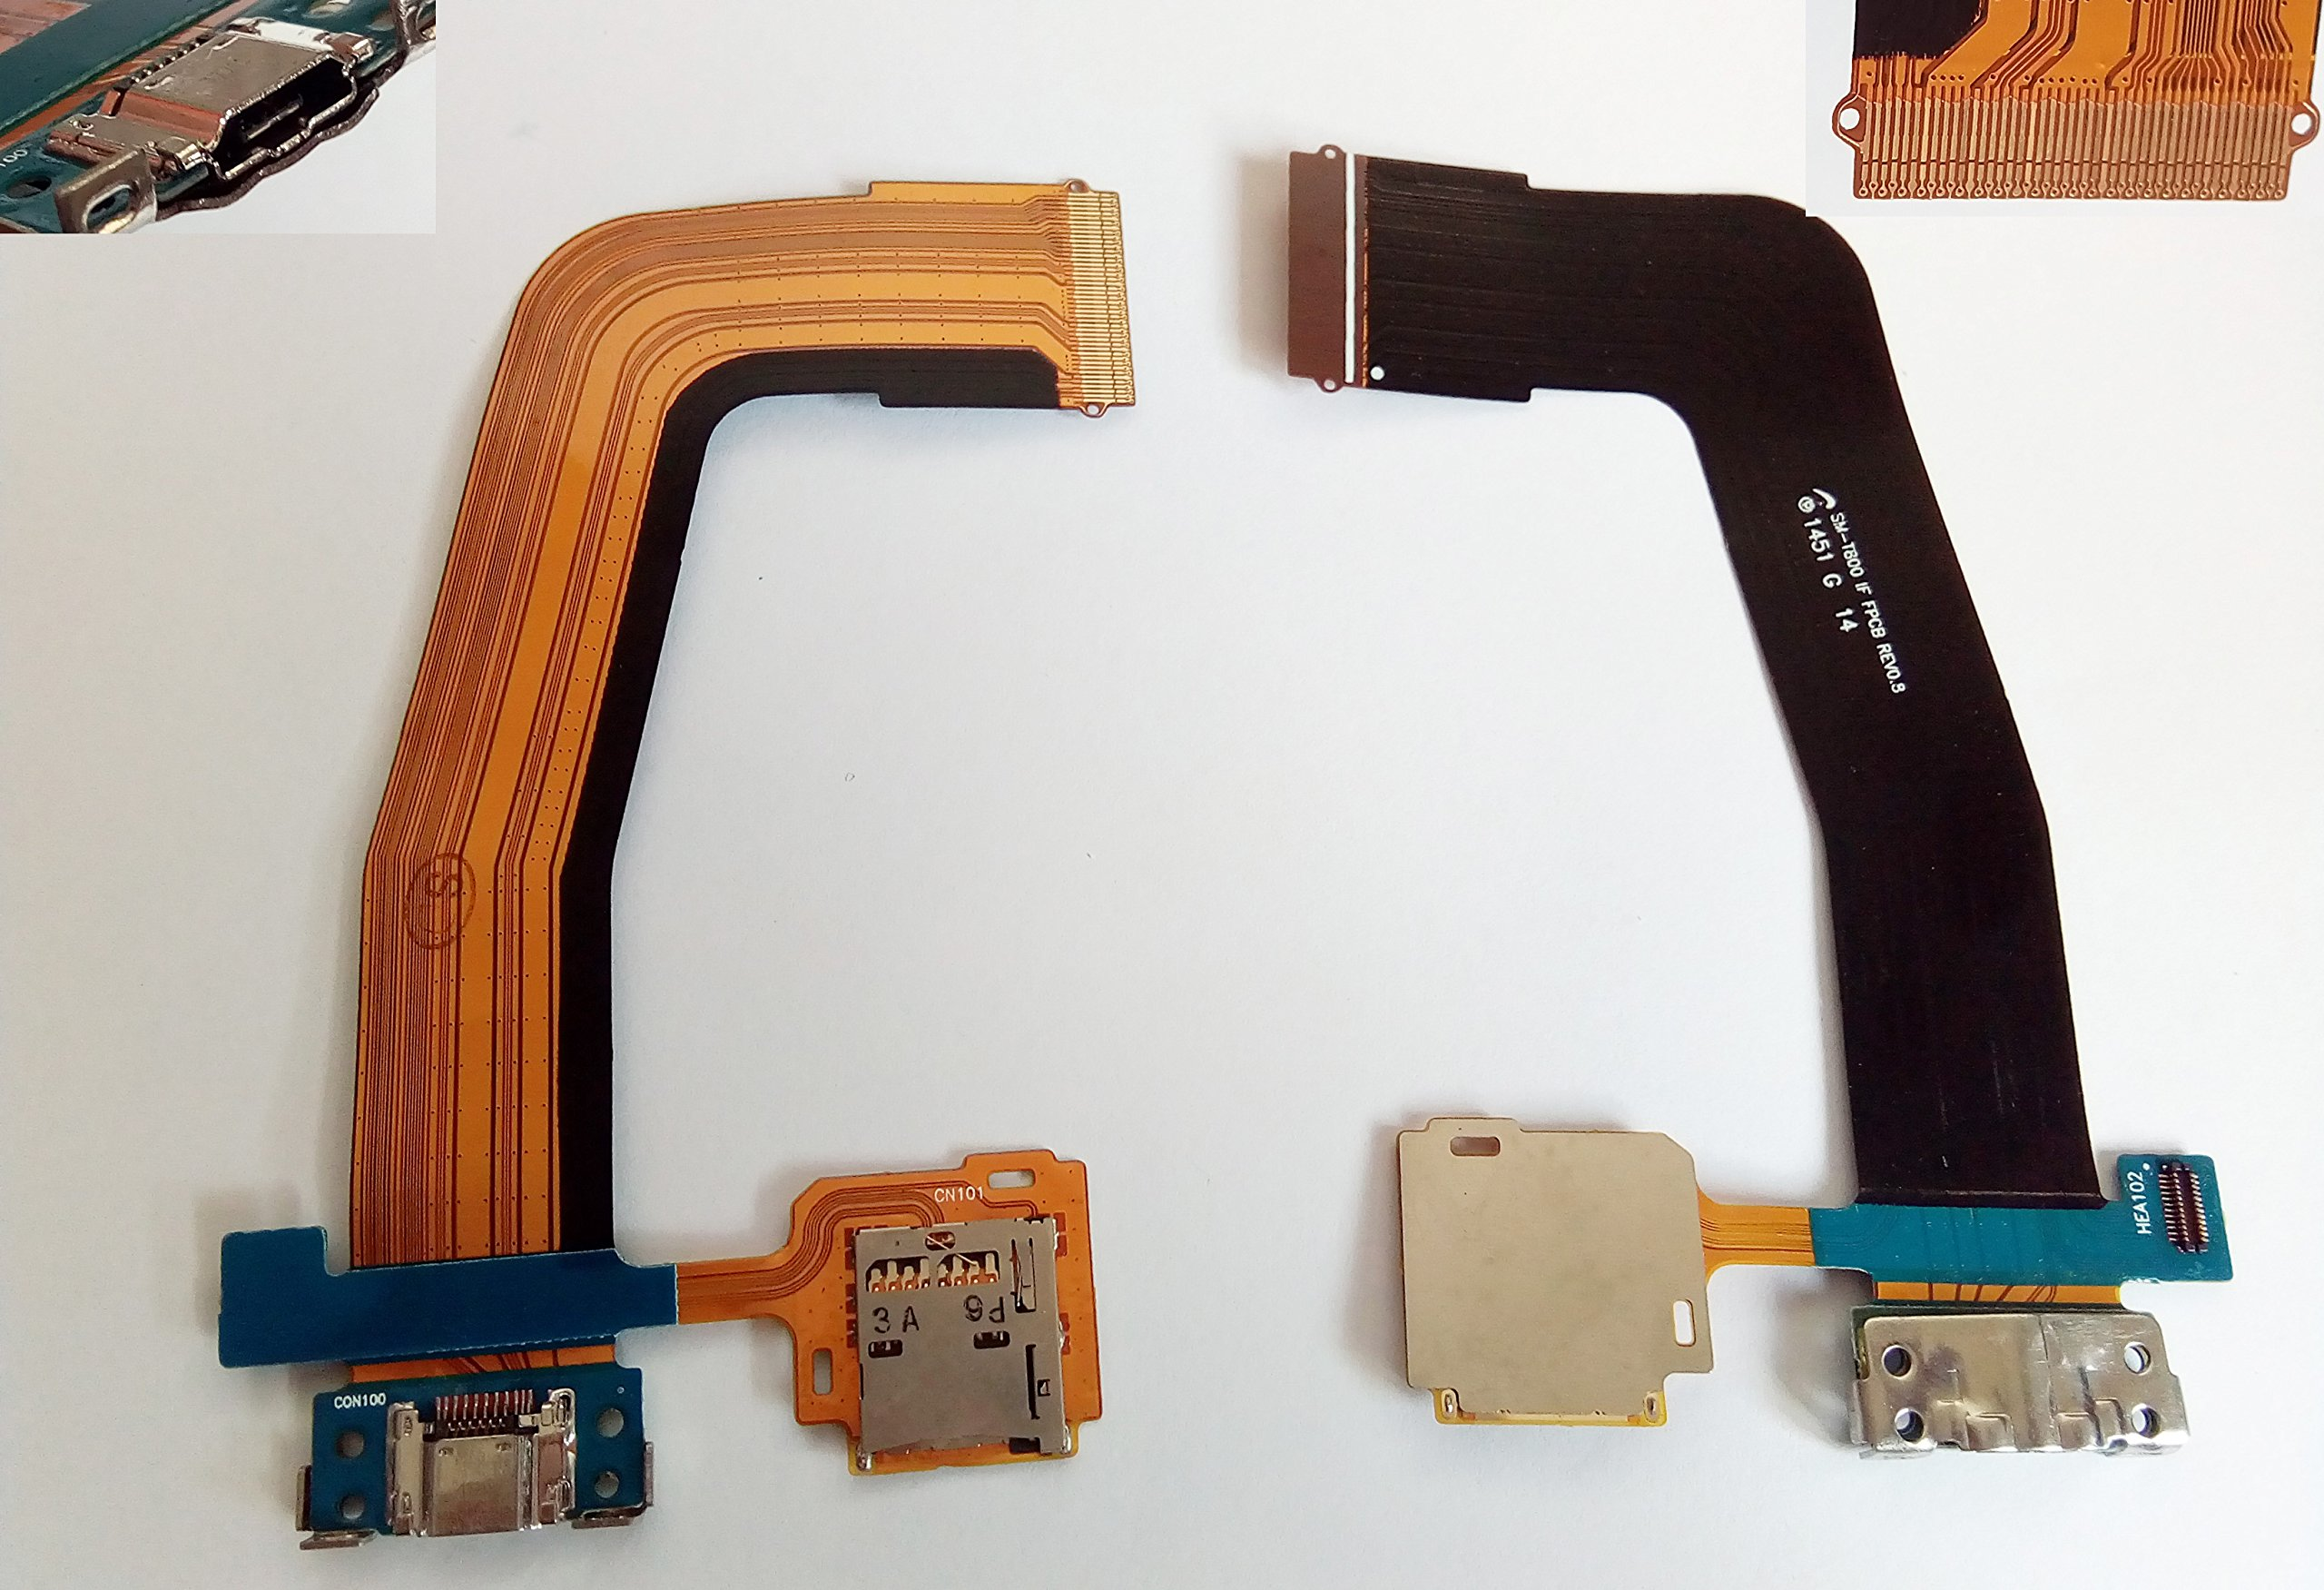 Charging Port Flex Cable for Samsung Tab S 10.5 SM-T800 T805 T805C T807A T807V T807T T807P T807R4 T800 T801 T807 SM-T800 Tab S 8.4 SM-T700 T700 T701